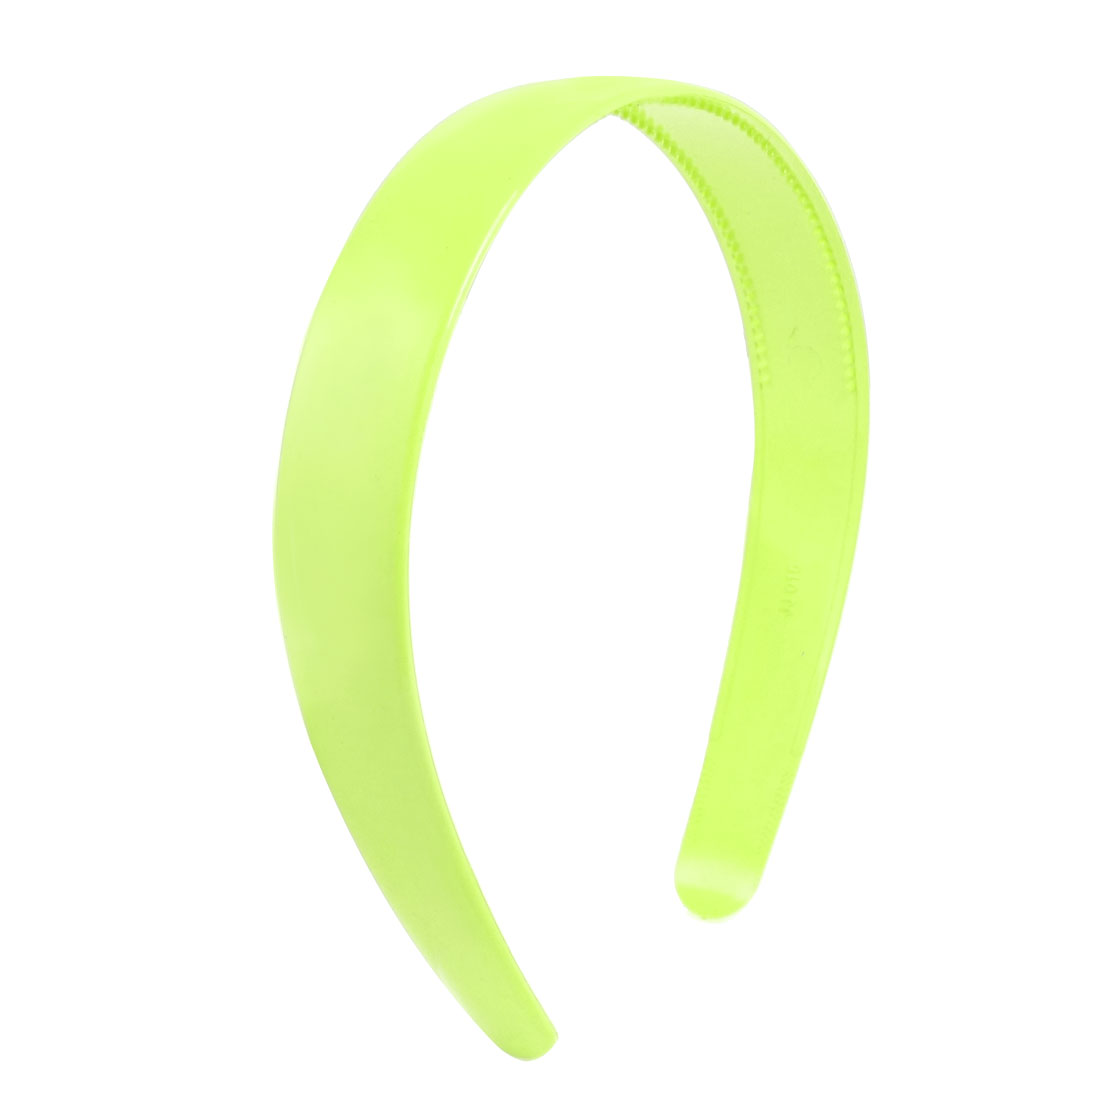 Lady Green Plastic Hair Hoop Headband Ornament w Teeth